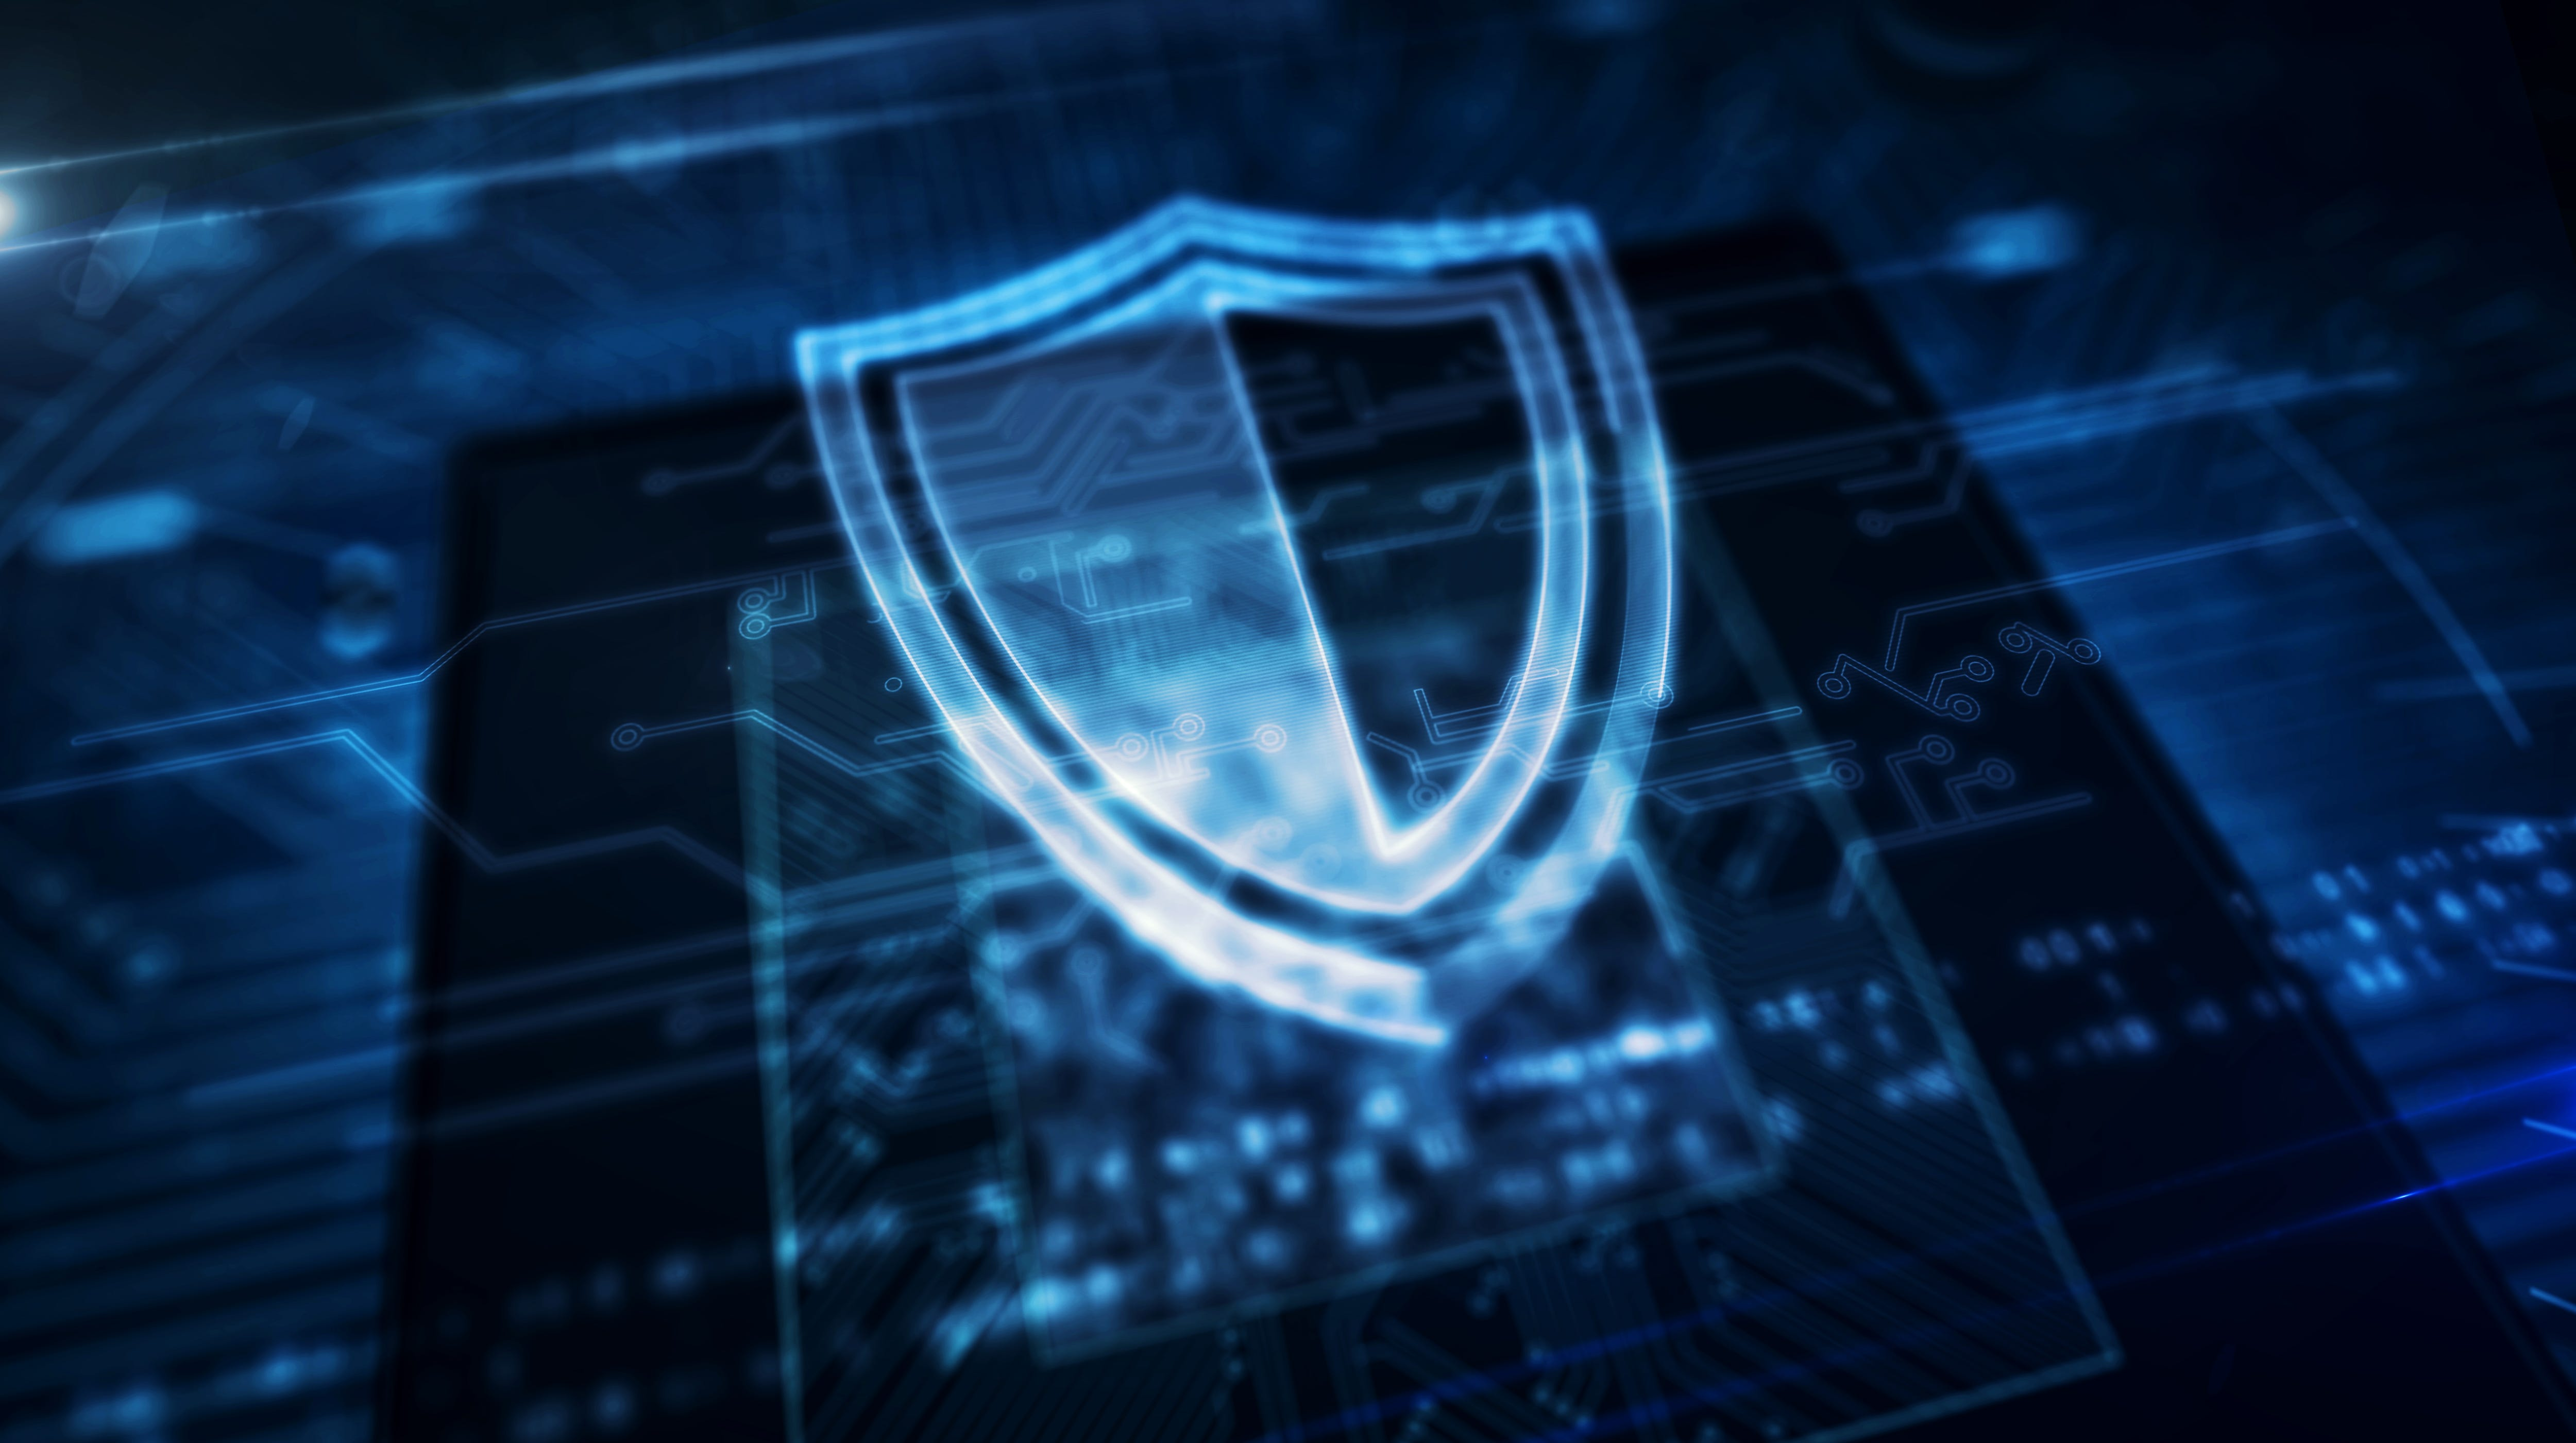 TxDOT becomes second state agency hit by ransomware